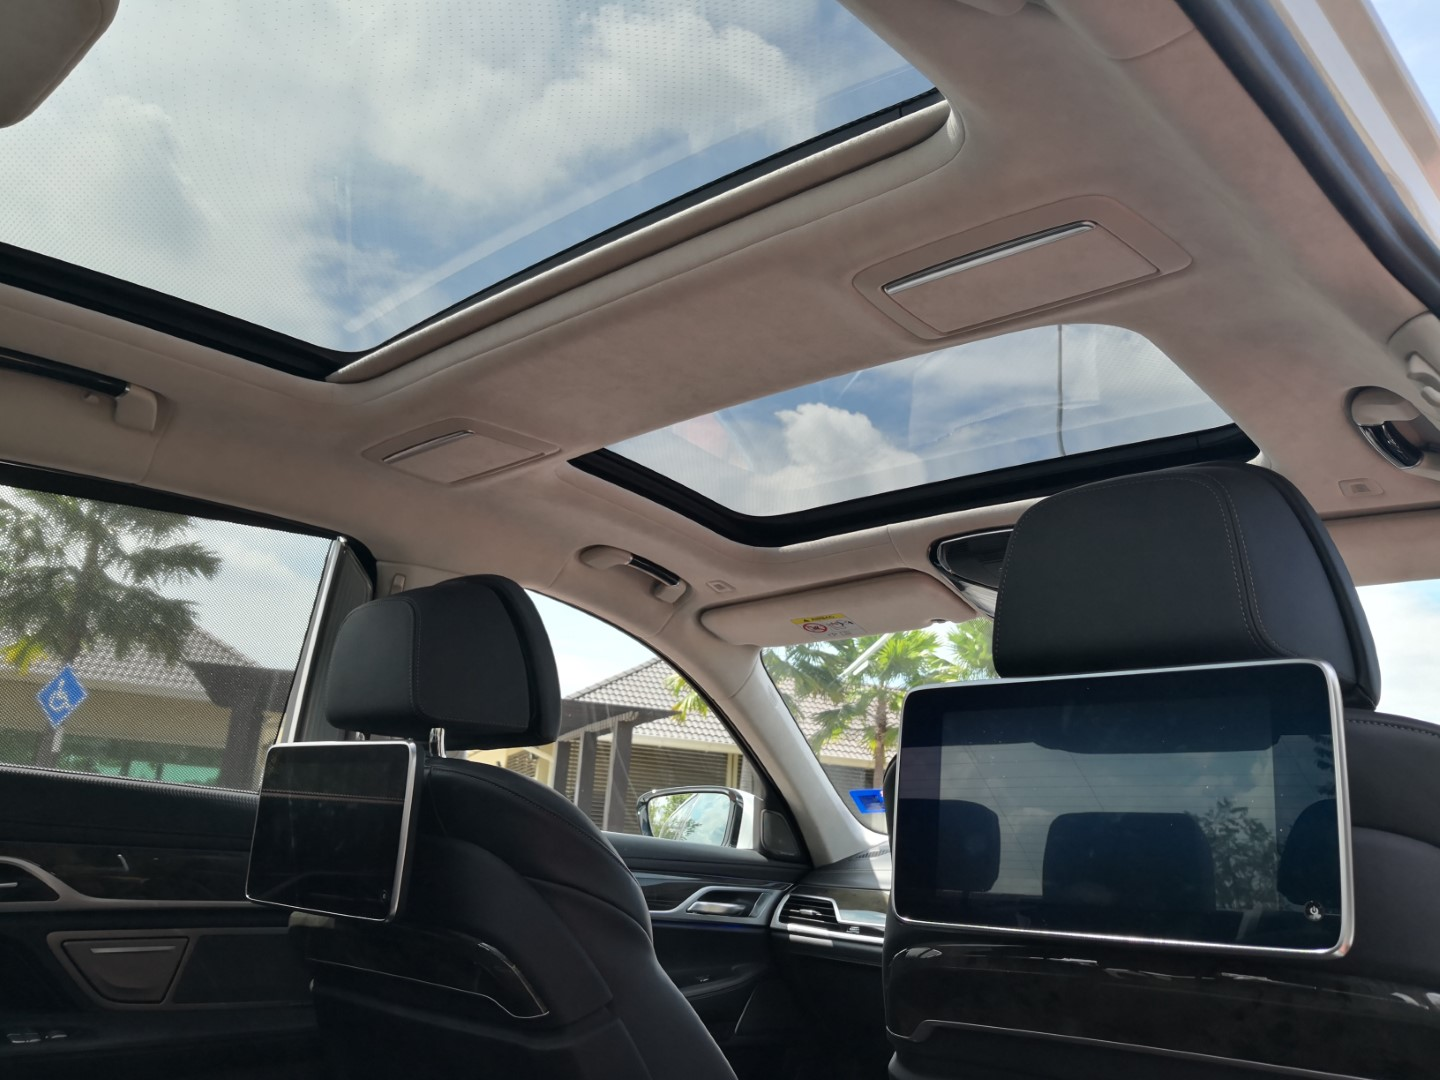 bmw 740le sunroof